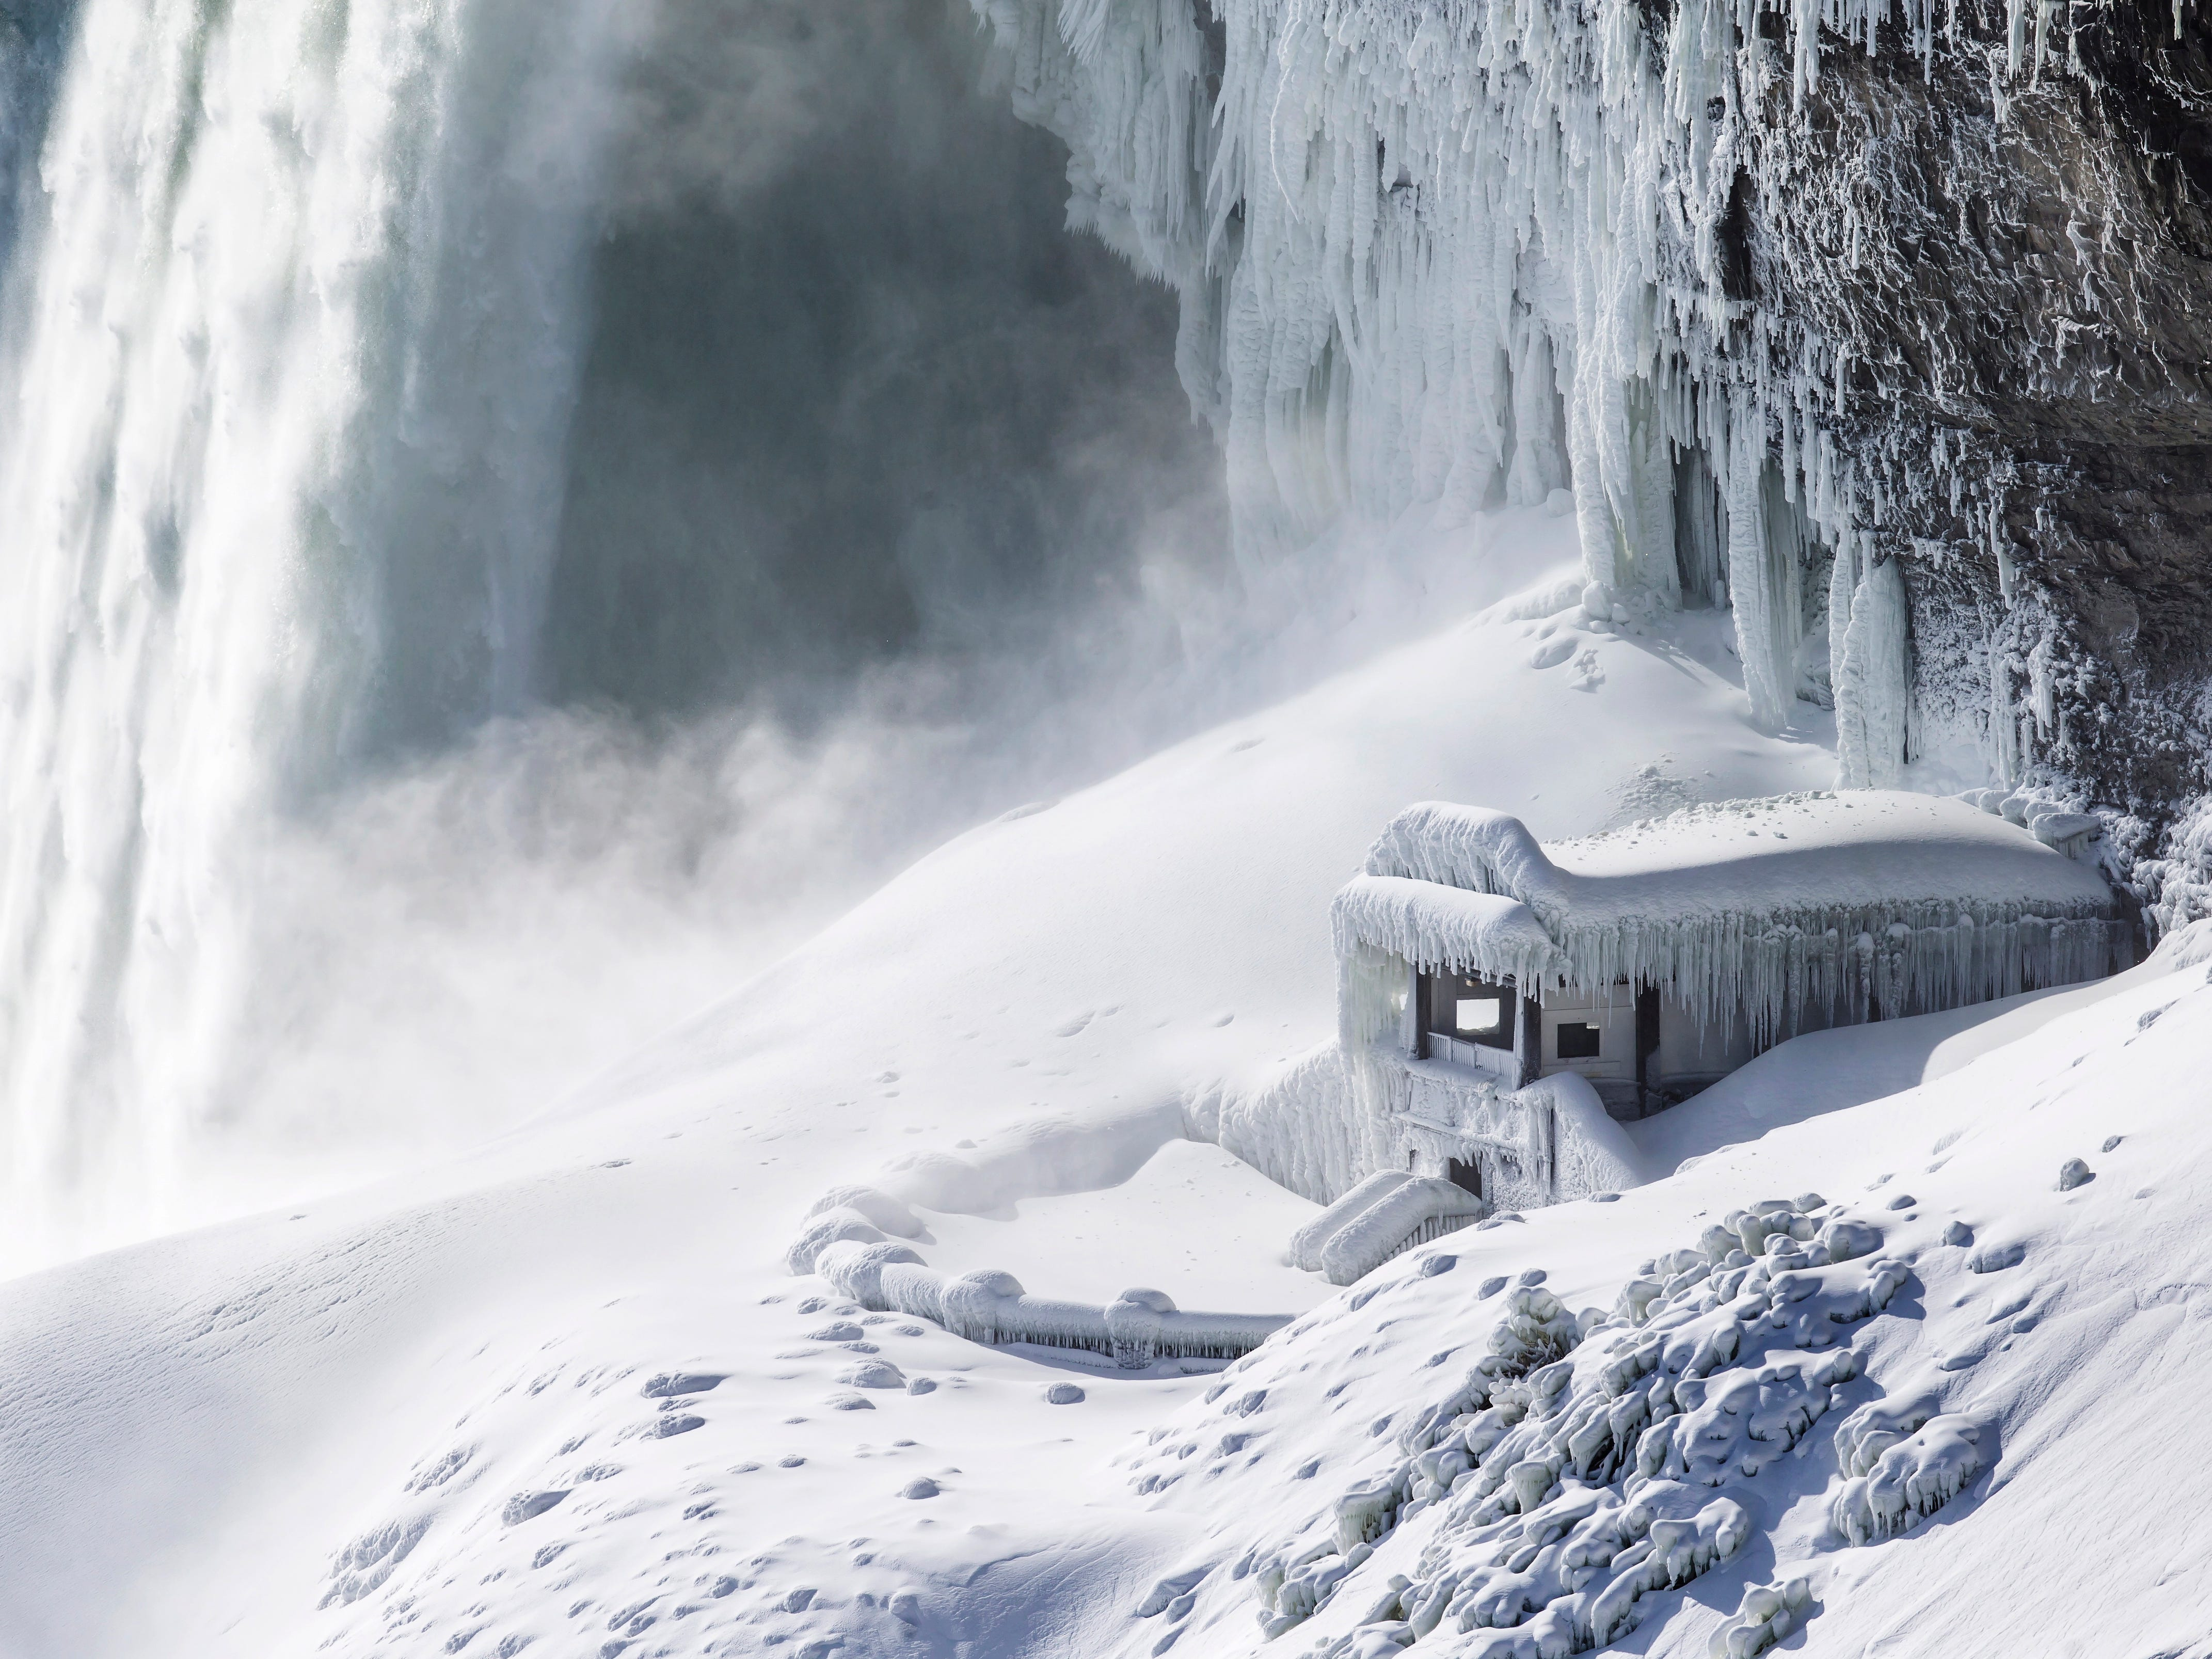 Ice covers the observation deck at the base of Horseshoe falls in Niagara Falls, Ontario, Canada Thursday, Jan. 31, 2019.